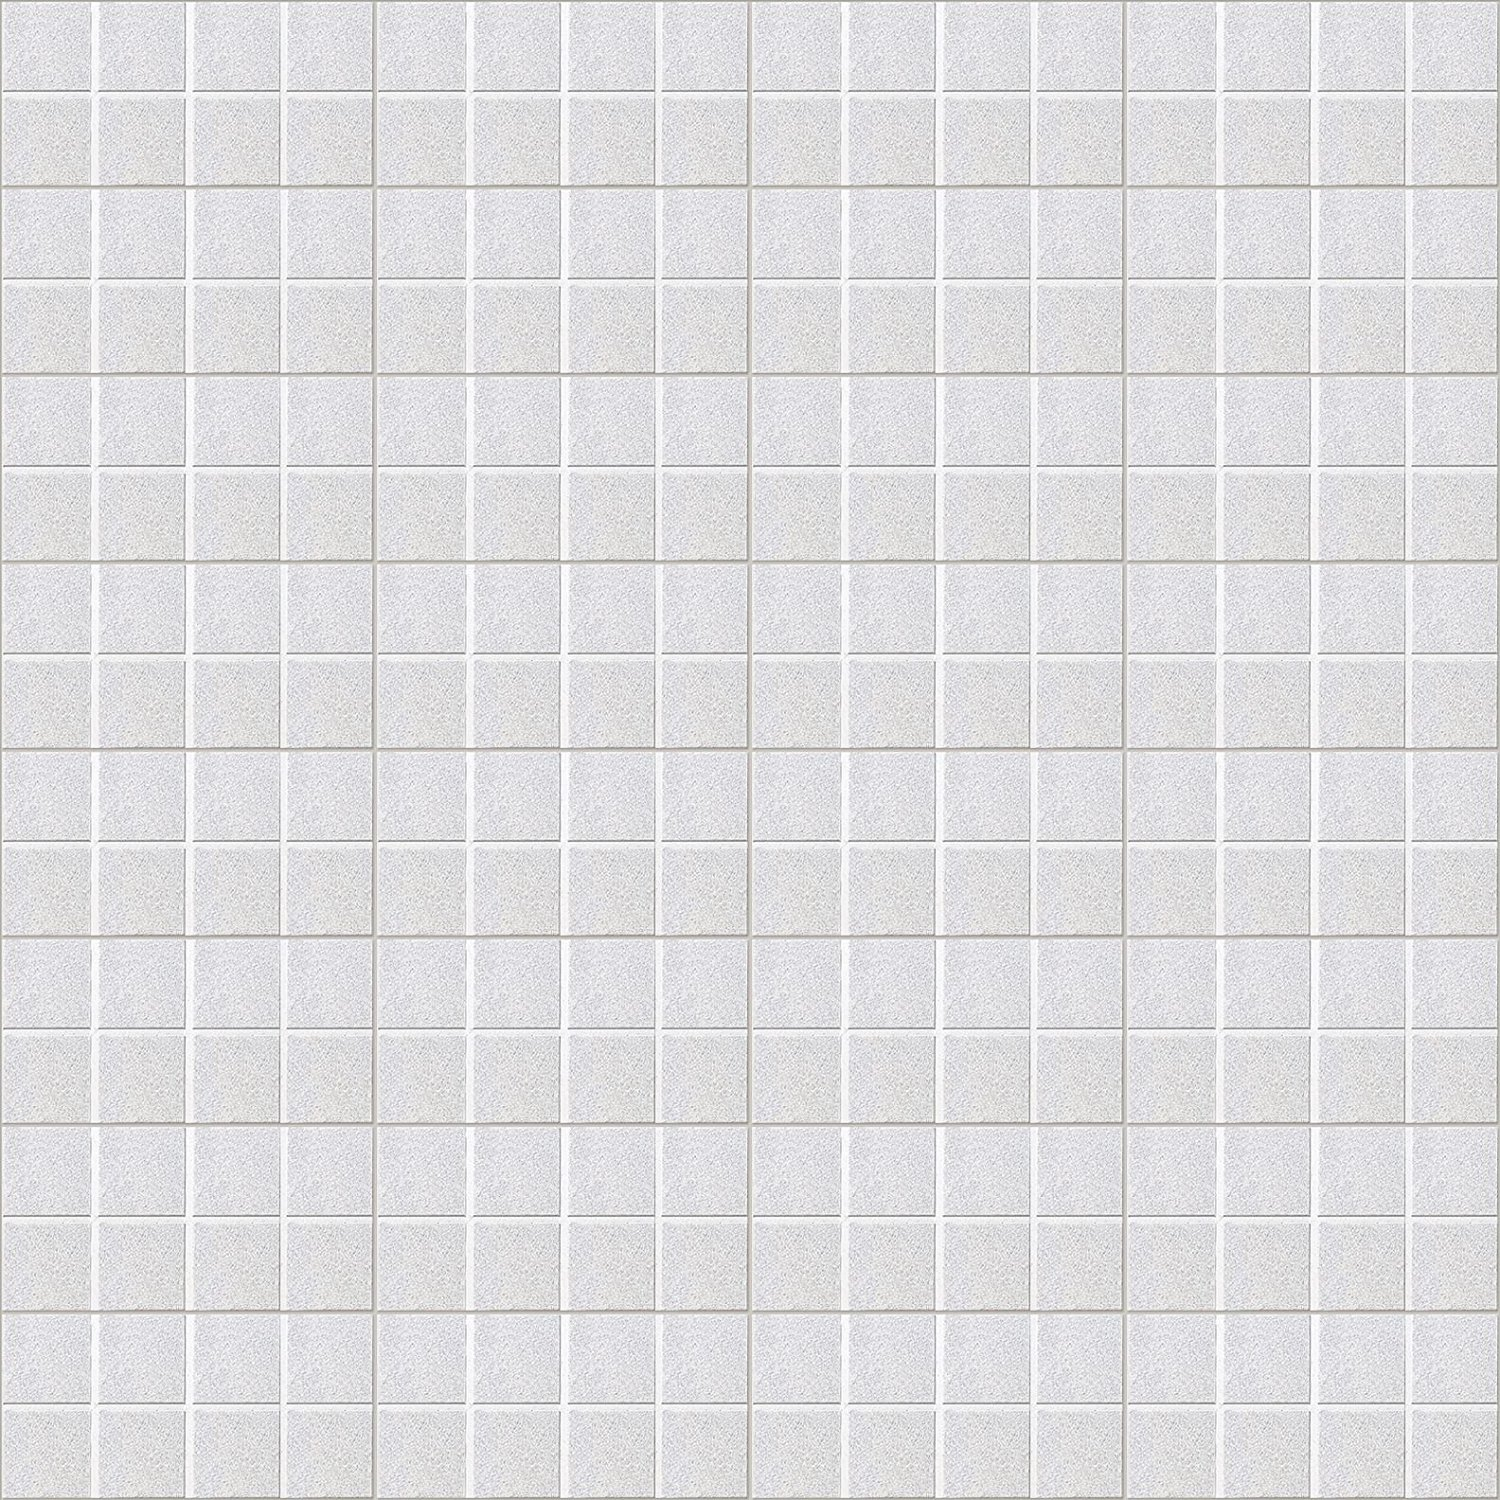 PK8 Acoustical Ceiling Tile 48X24 Thickness 5//8